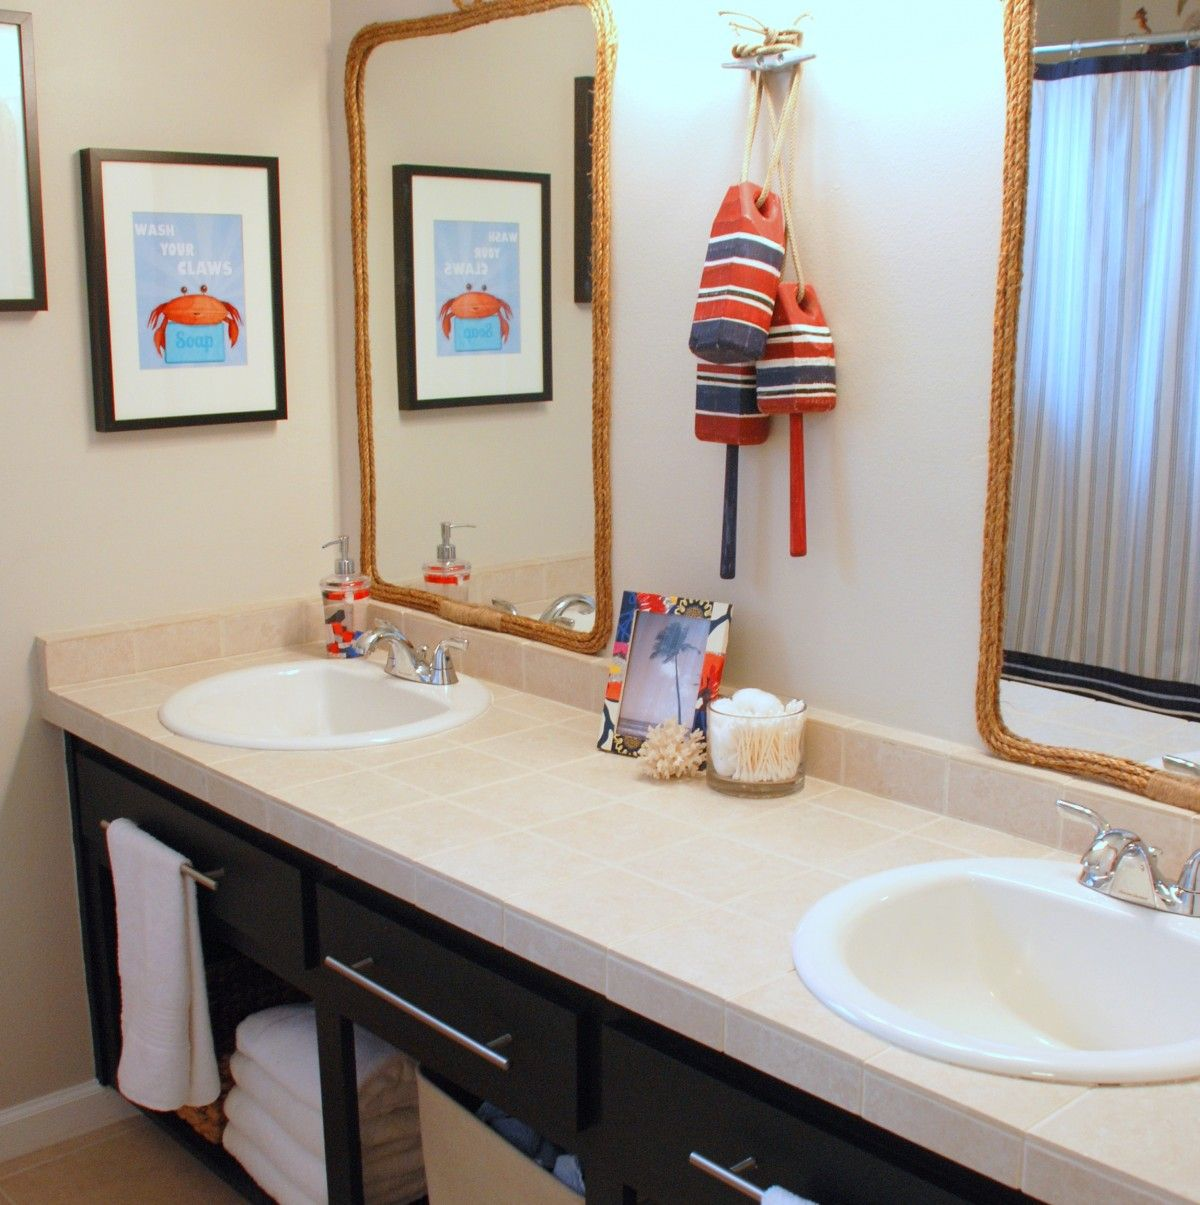 Pin By Bibi Napier On I Need A New House Pinterest Double Sink - Kids bathroom vanity for small bathroom ideas